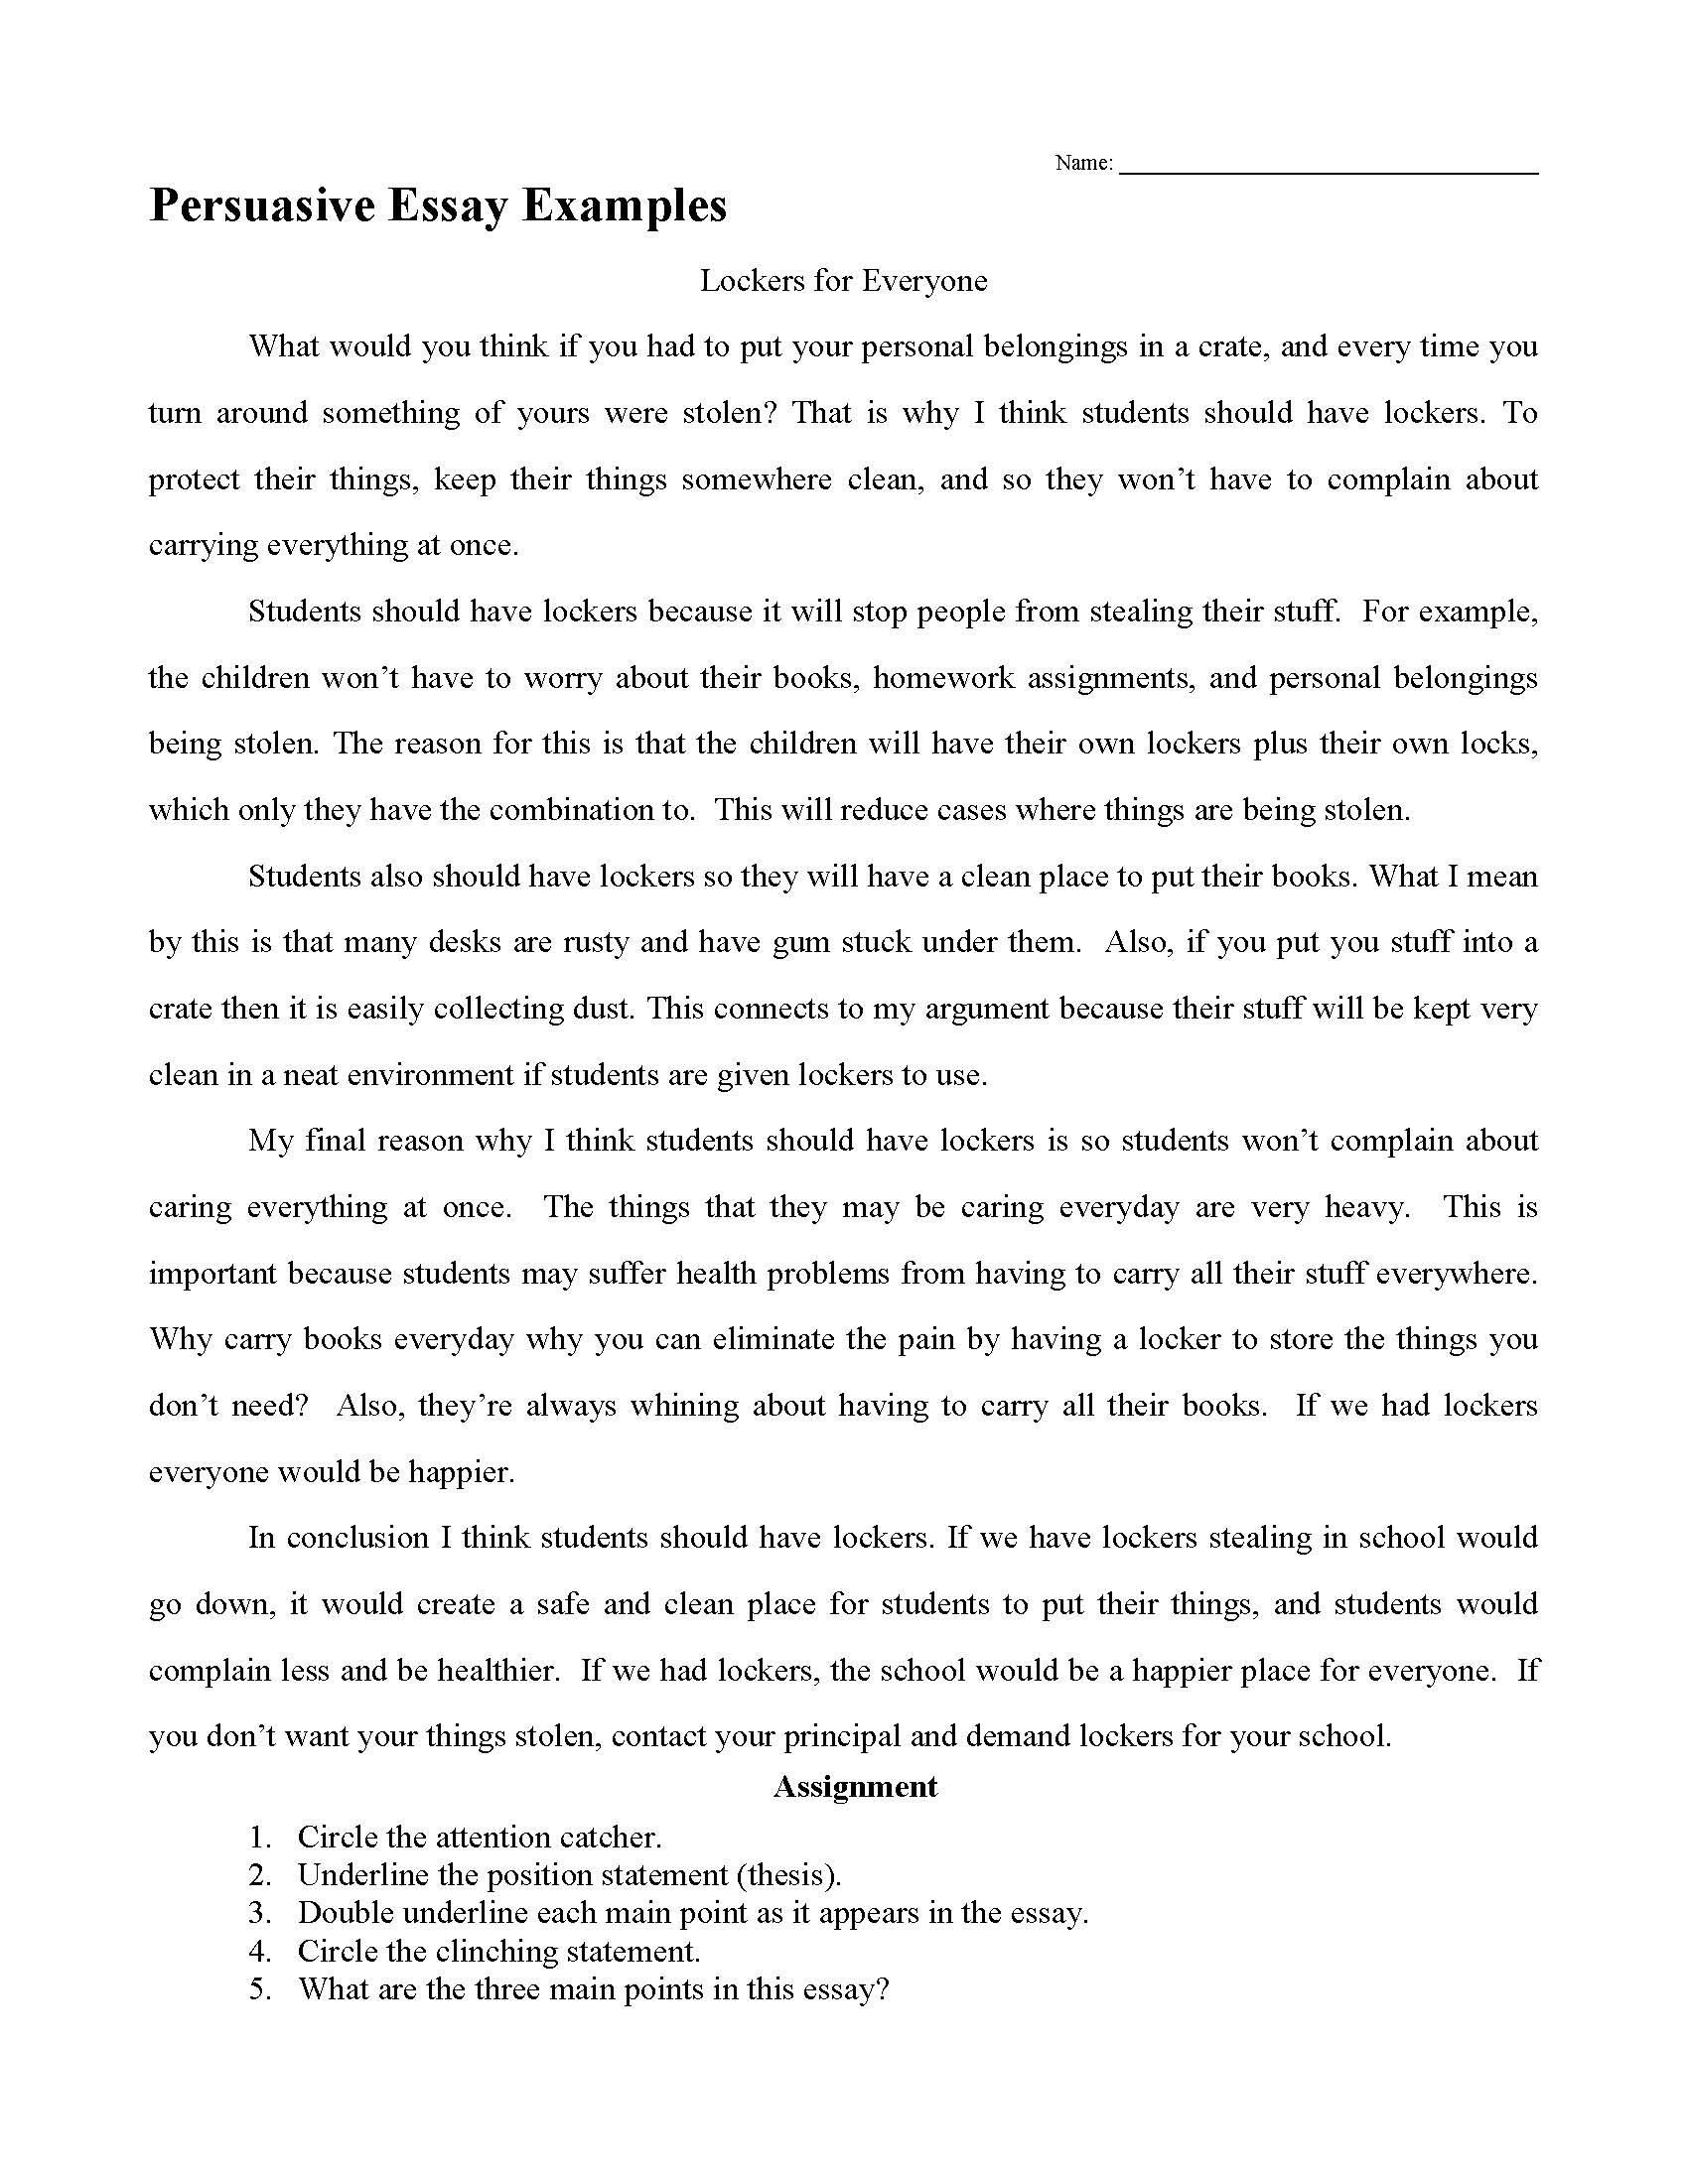 015 Research Paper Immigration Topics Persuasive Essay Examples Stunning Law Illegal Full